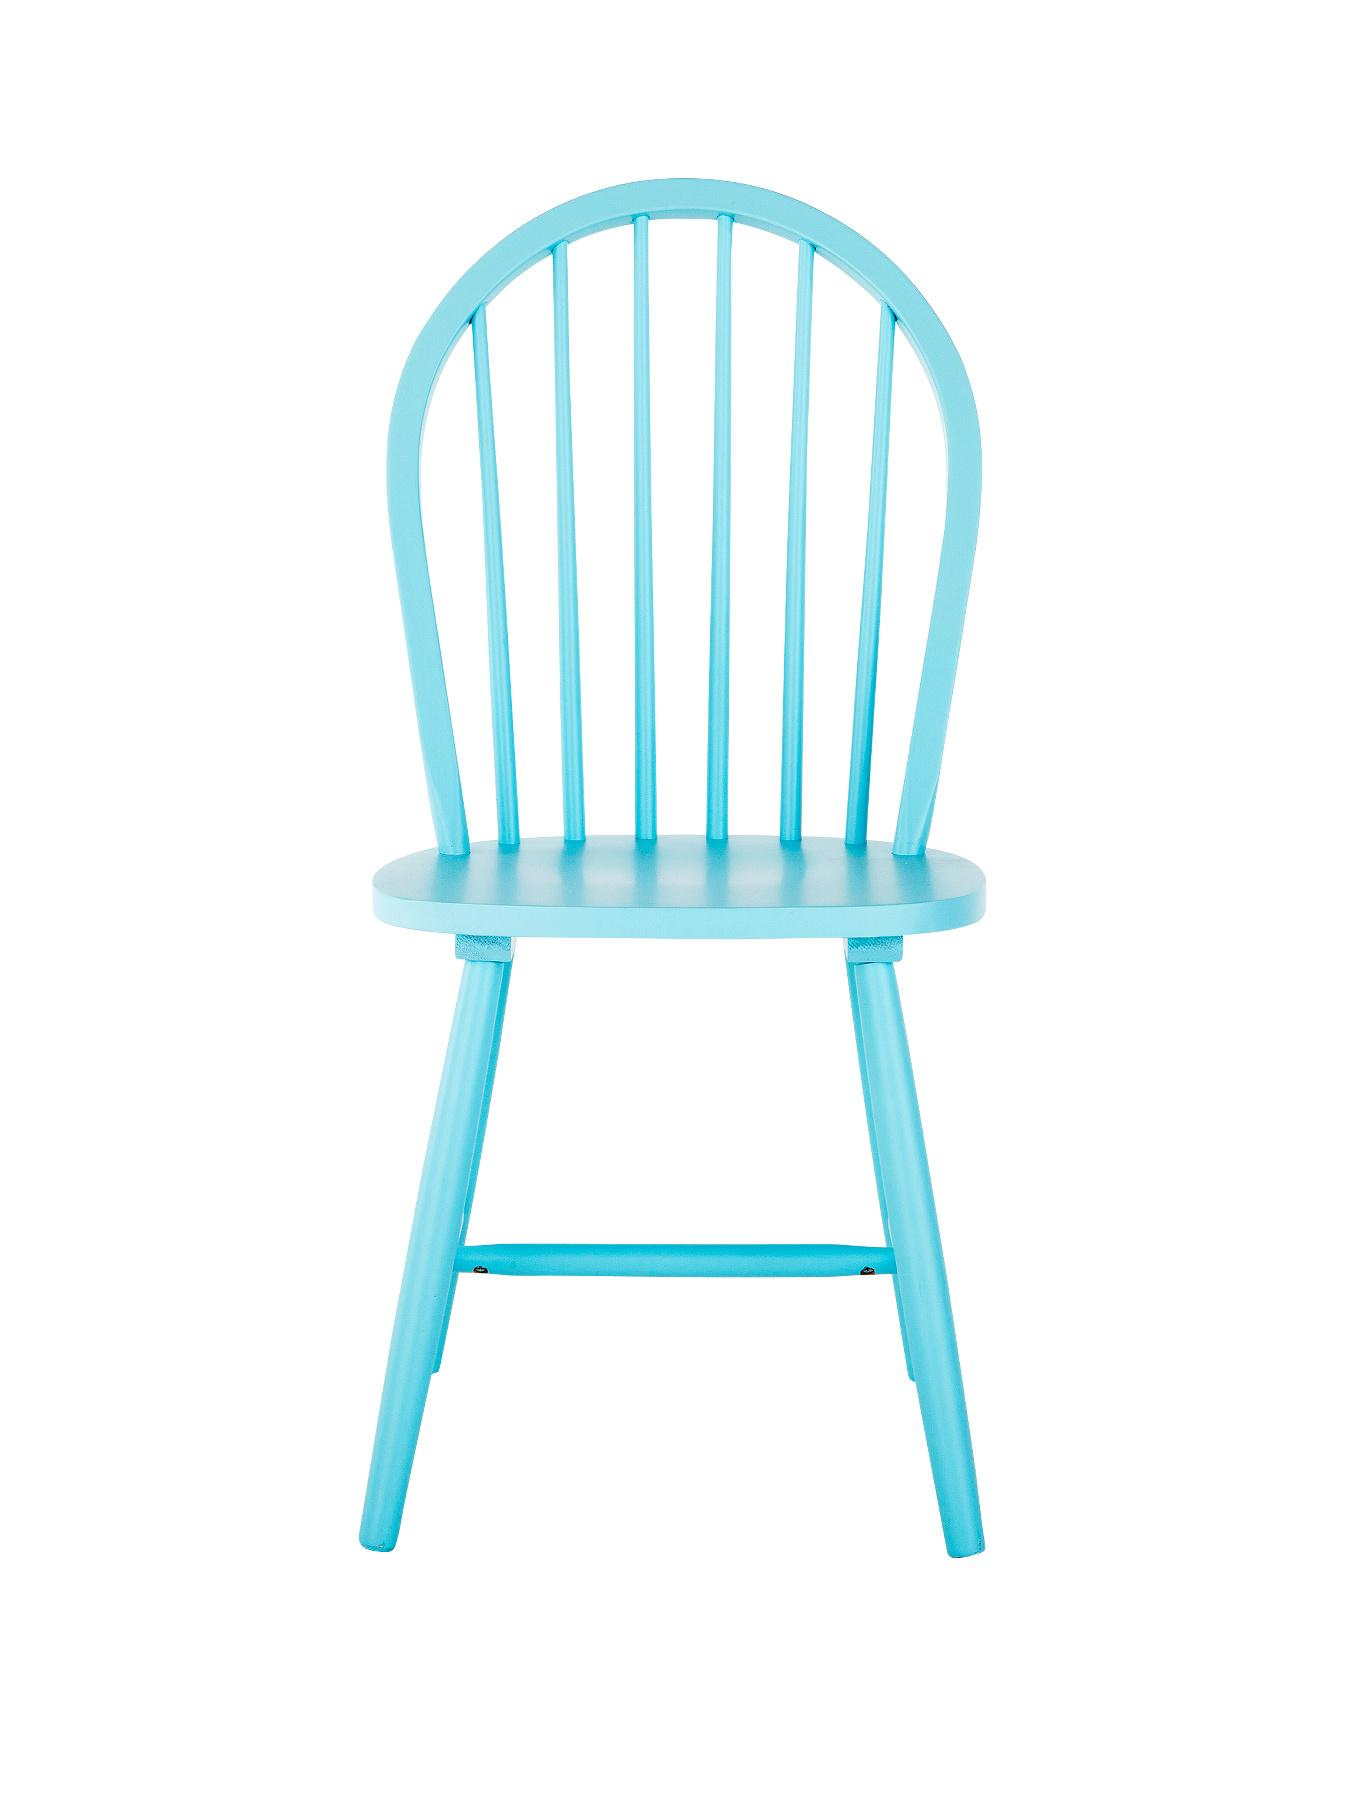 Daisy Chair - Blue - Blue, Blue